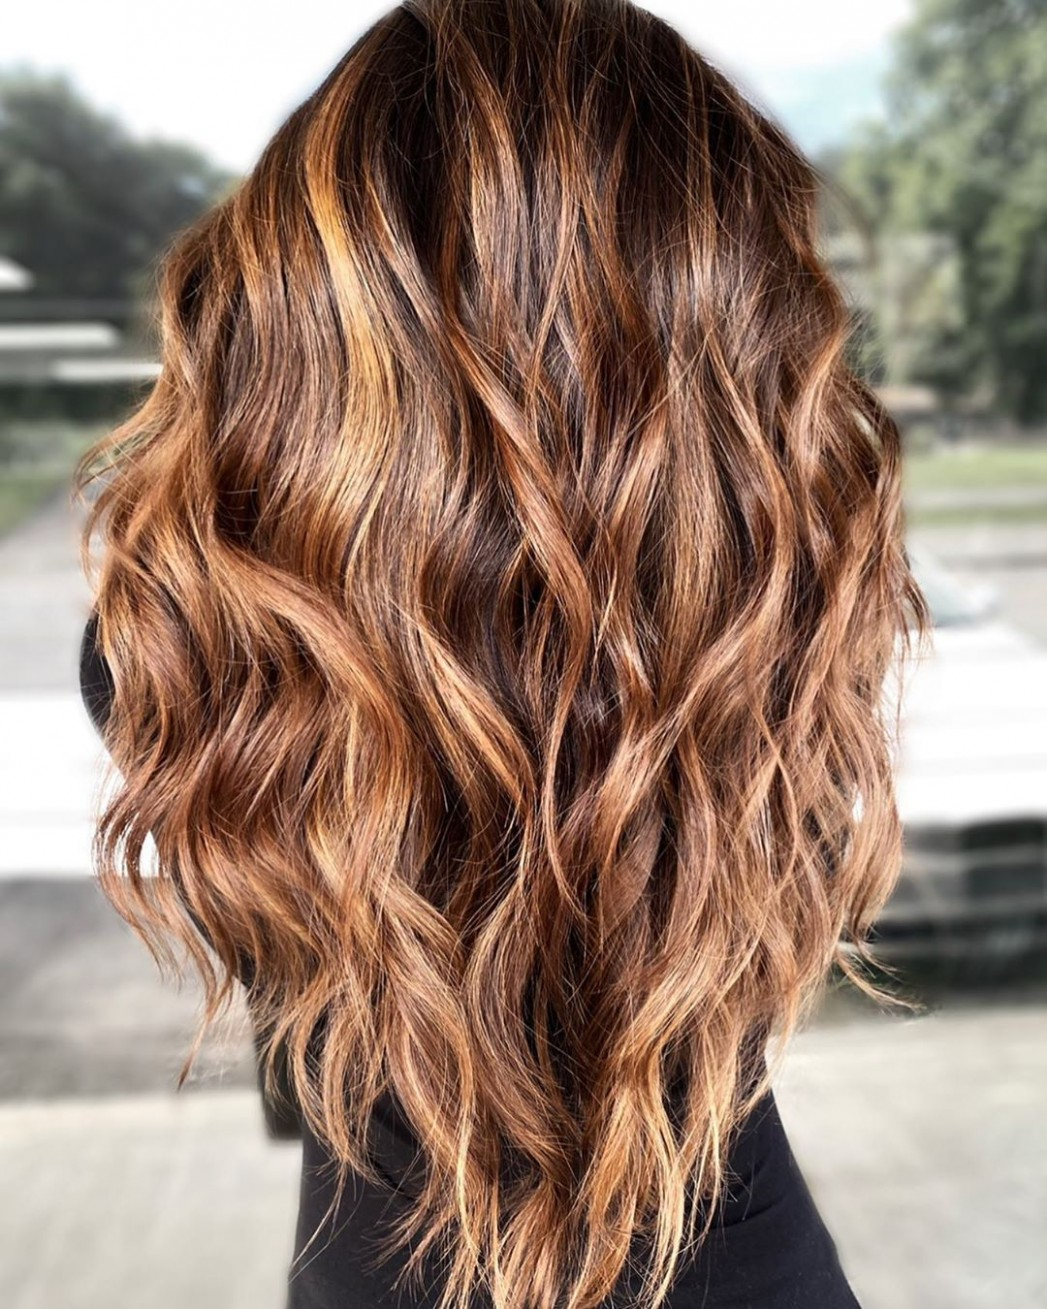 10 Cute Layered Hairstyles And Cuts For Long Hair In 10 Volume Haircut For Long Hair